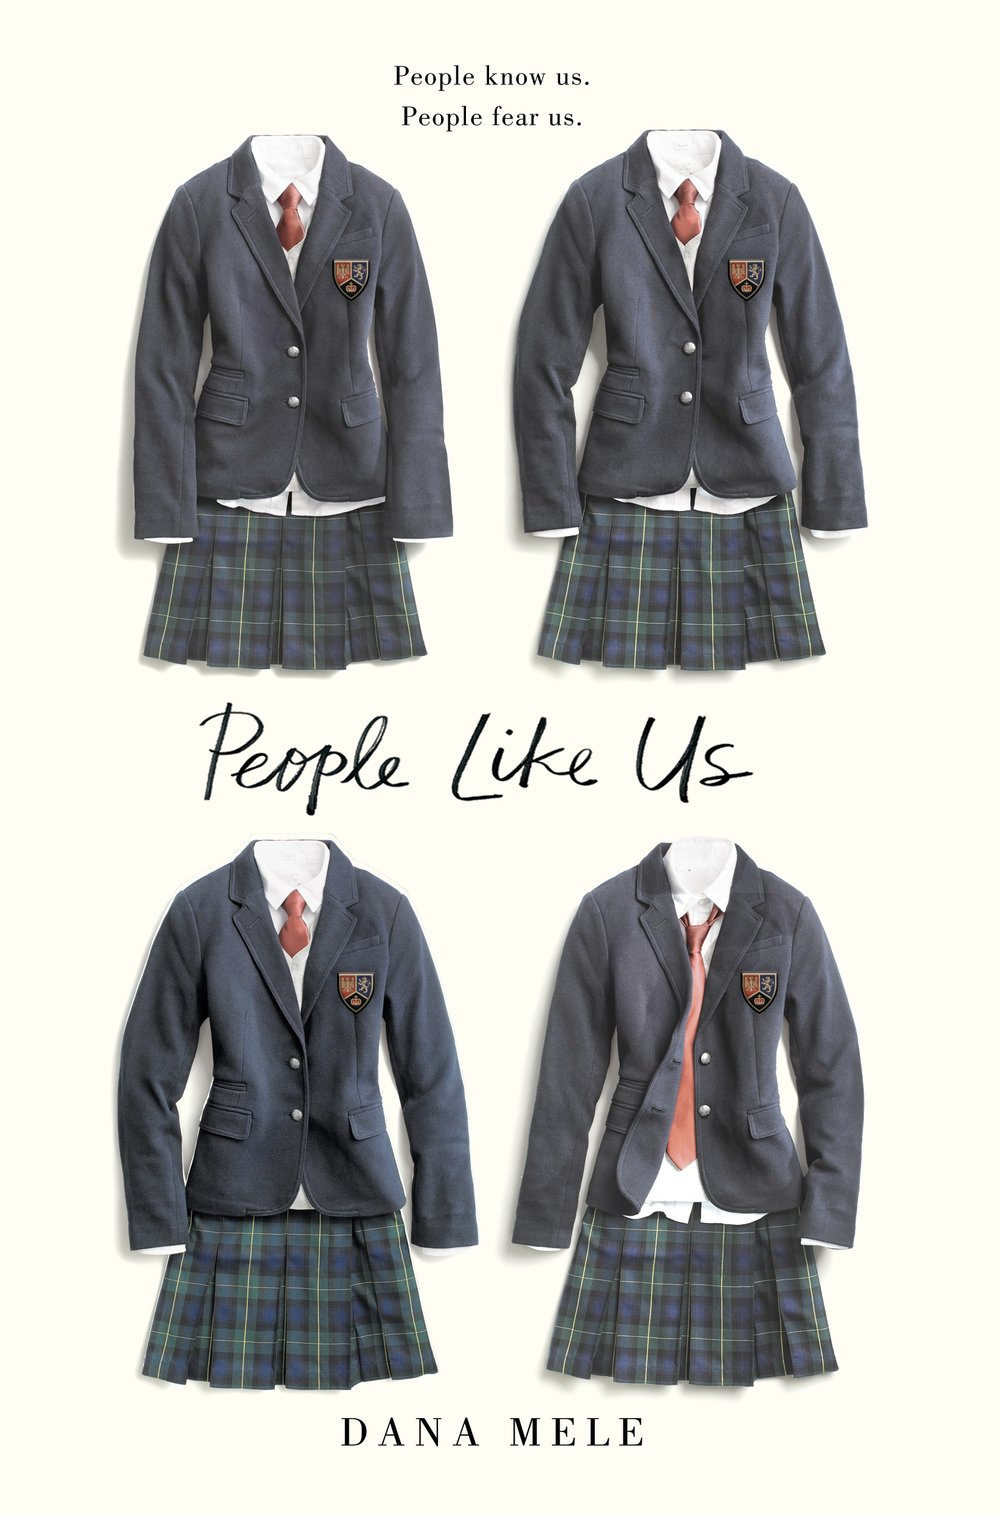 Happy book birthday to PEOPLE LIKE US by Dana Mele! - A sharp psychological thriller that's just right for fans of Thirteen Reasons Why and Pretty Little Liars--this story will seduce, mislead, and finally, betray you.Kay Donovan may have skeletons in her closet, but the past is past, and she's reinvented herself entirely. Now she's a star soccer player whose group of gorgeous friends run their private school with effortless popularity and acerbic wit. But when a girl's body is found in the lake, Kay's carefully constructed life begins to topple. The dead girl has left Kay a computer-coded scavenger hunt, which, as it unravels, begins to implicate suspect after suspect, until Kay herself is in the crosshairs of a murder investigation. But if Kay's finally backed into a corner, she'll do what it takes to survive. Because at Bates Academy, the truth is something you make...not something that happened.Debut author Dana Mele has written a taut, sophisticated suspense novel that readers will tear through and not stop talking about.